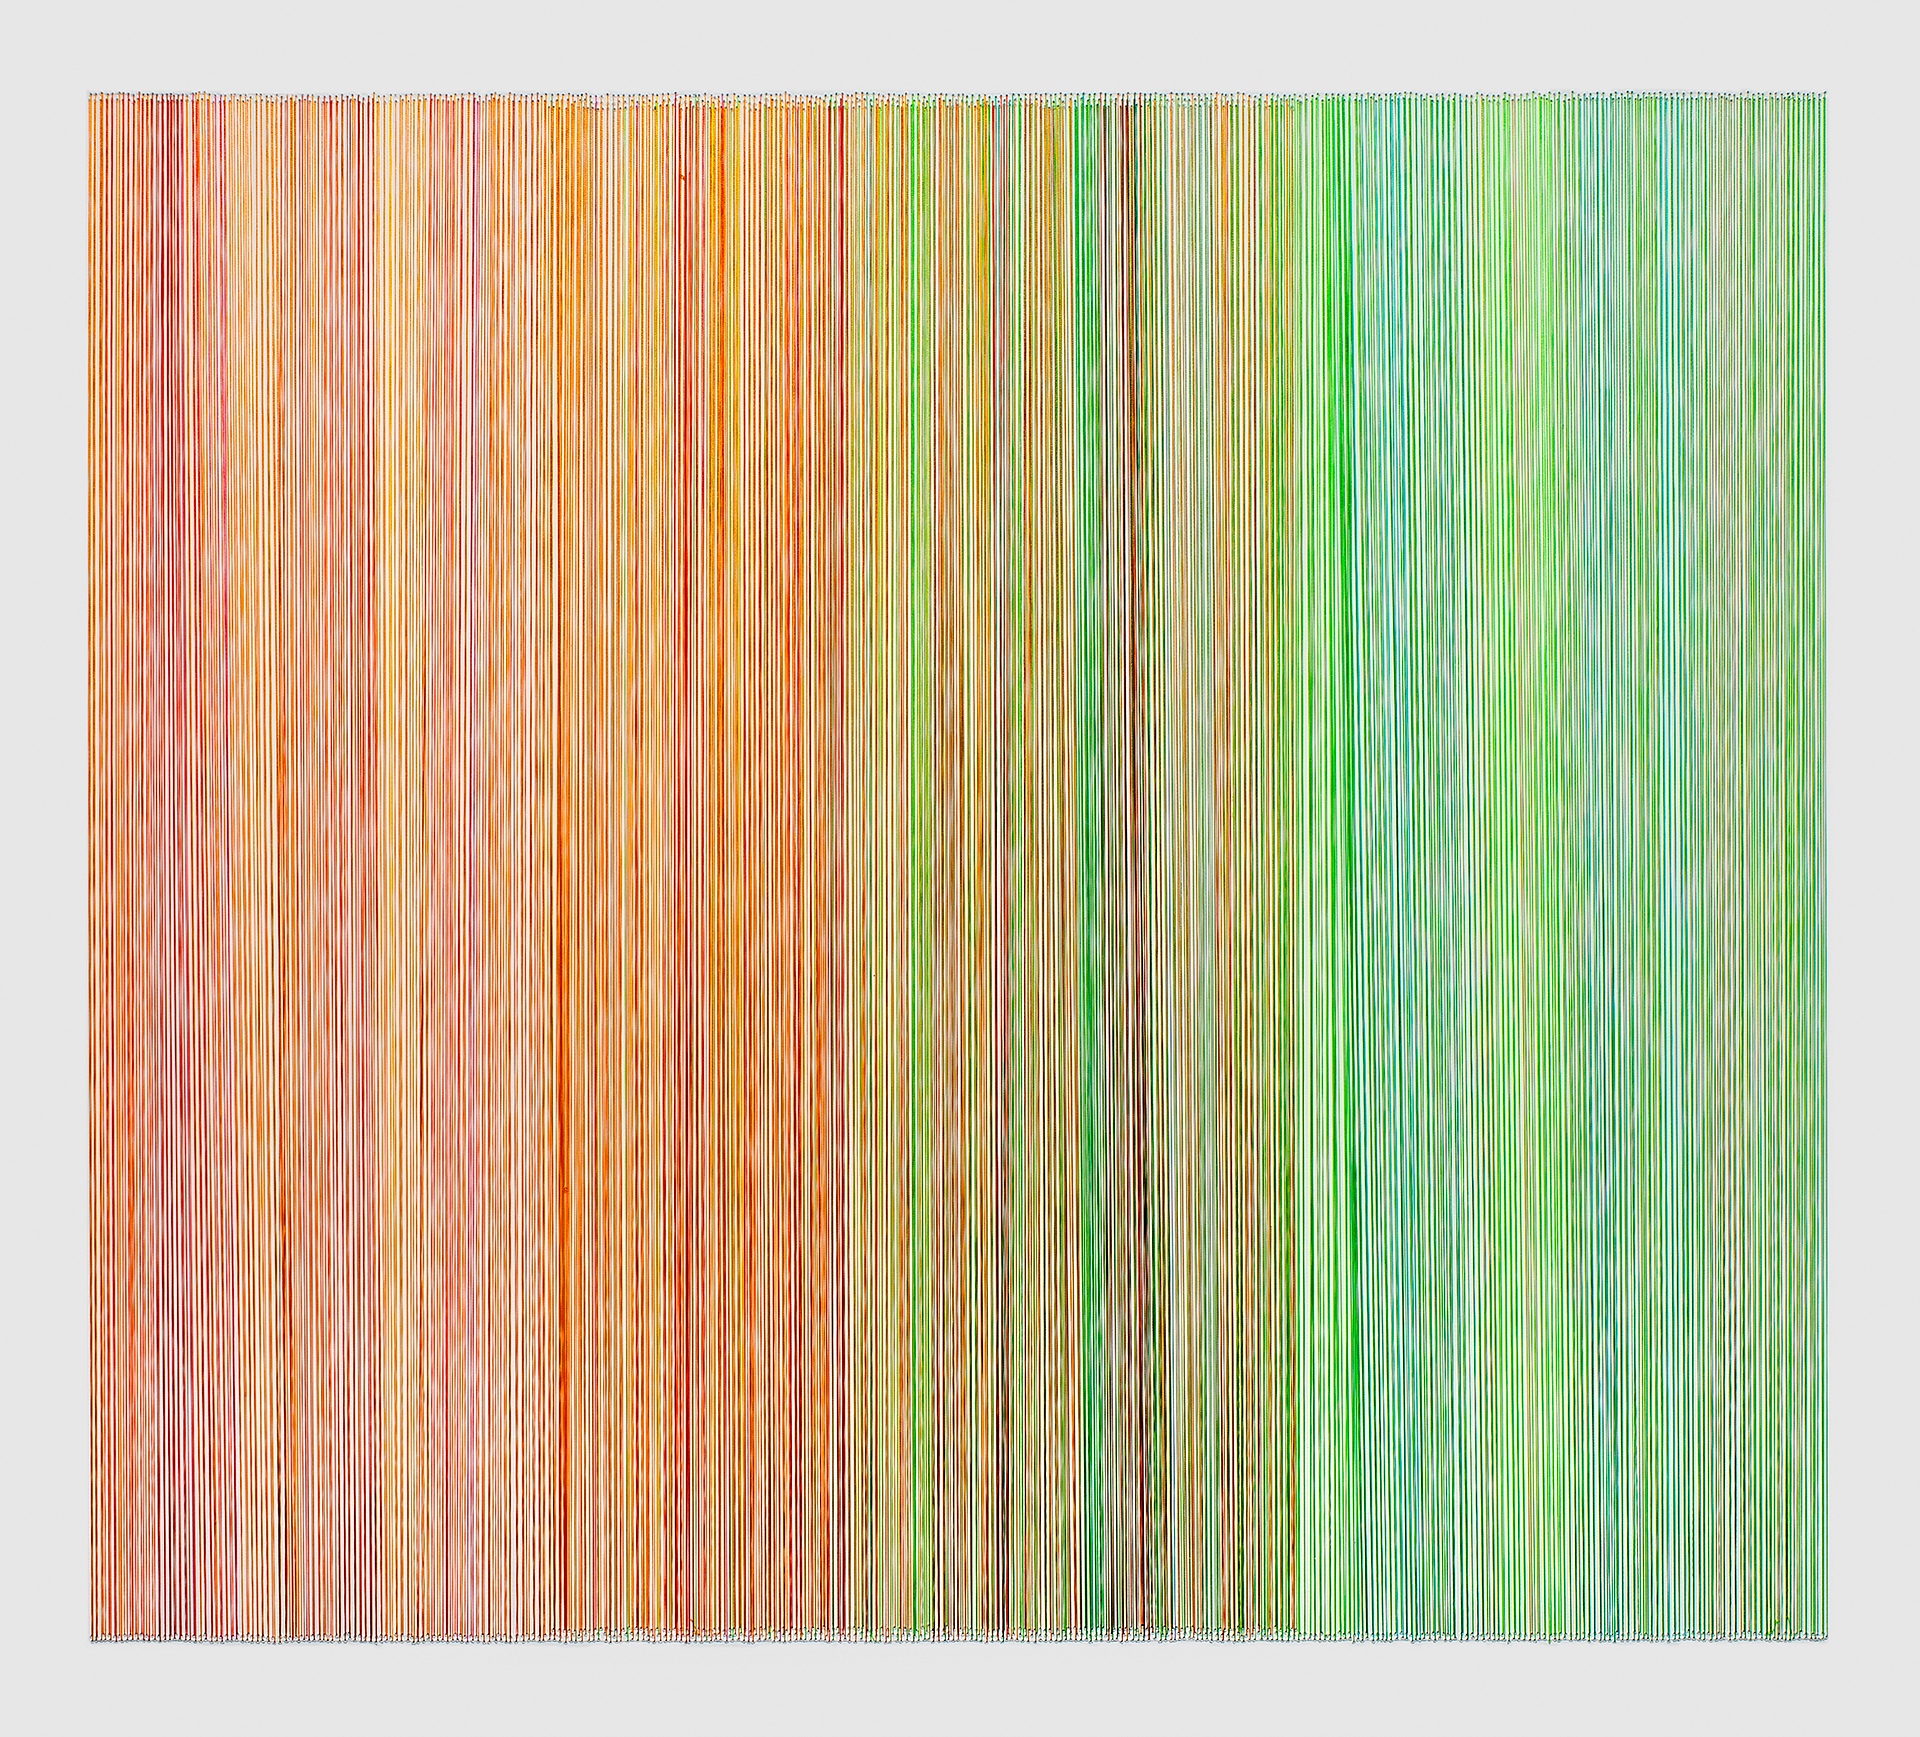 thread drawing 15   2012 rayon thread 31 by 28 inches Private Collection,Fairway, KS